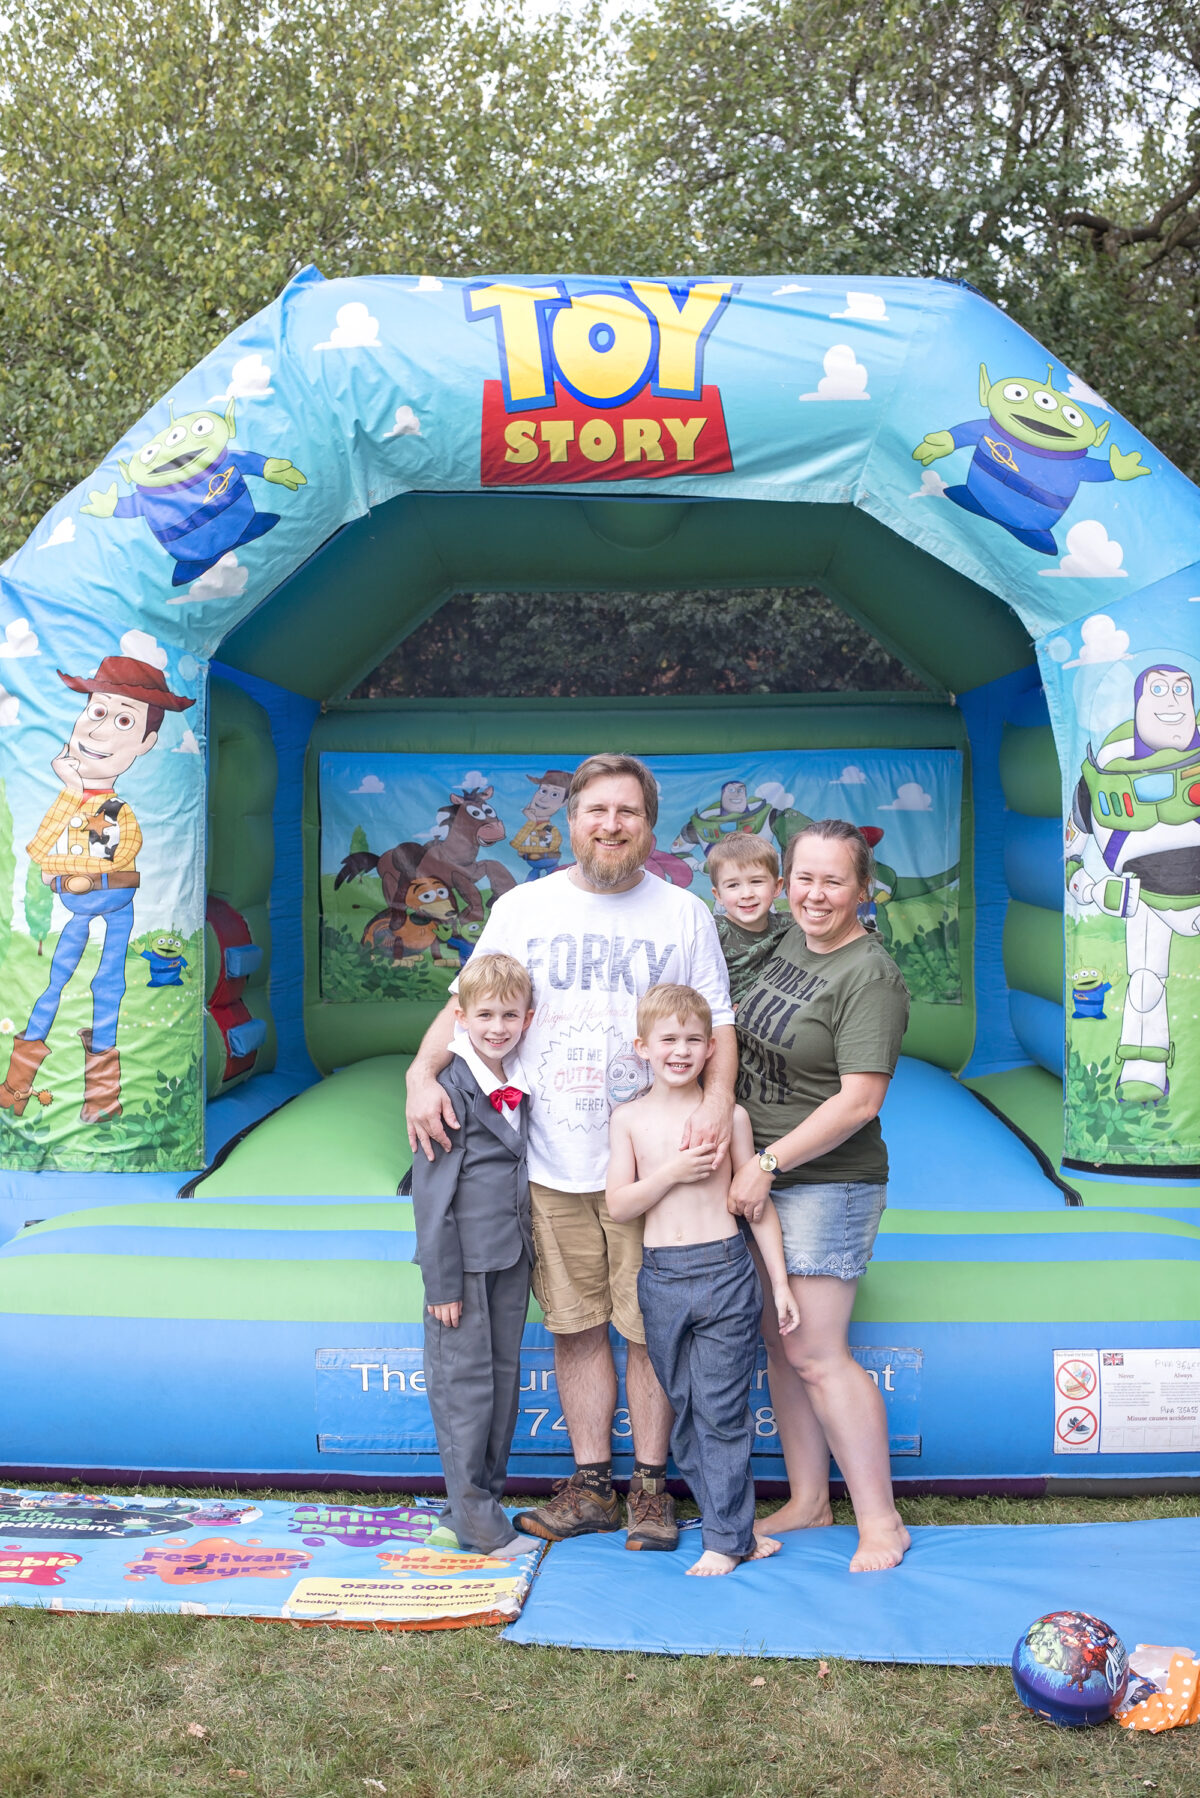 Image shows a toy story inflatable castle and a the Jones family stood next to it.